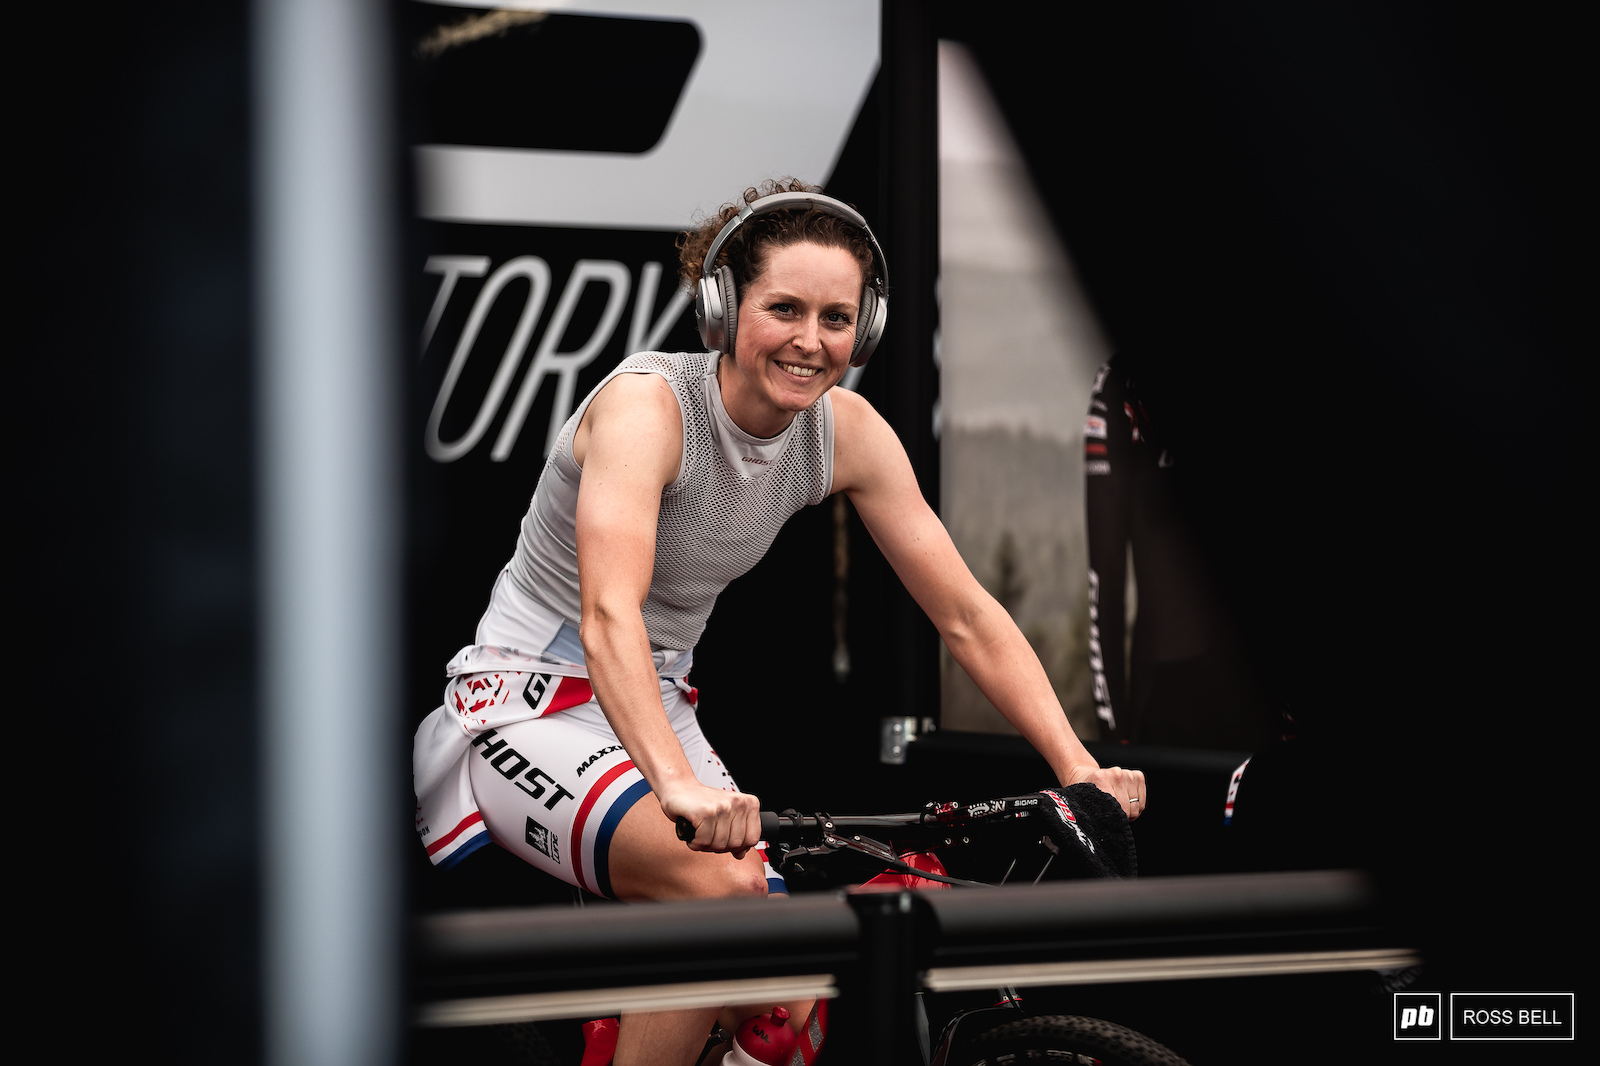 Anne Terpstra getting ready for the final race action after a busy week in Nove Mesto.